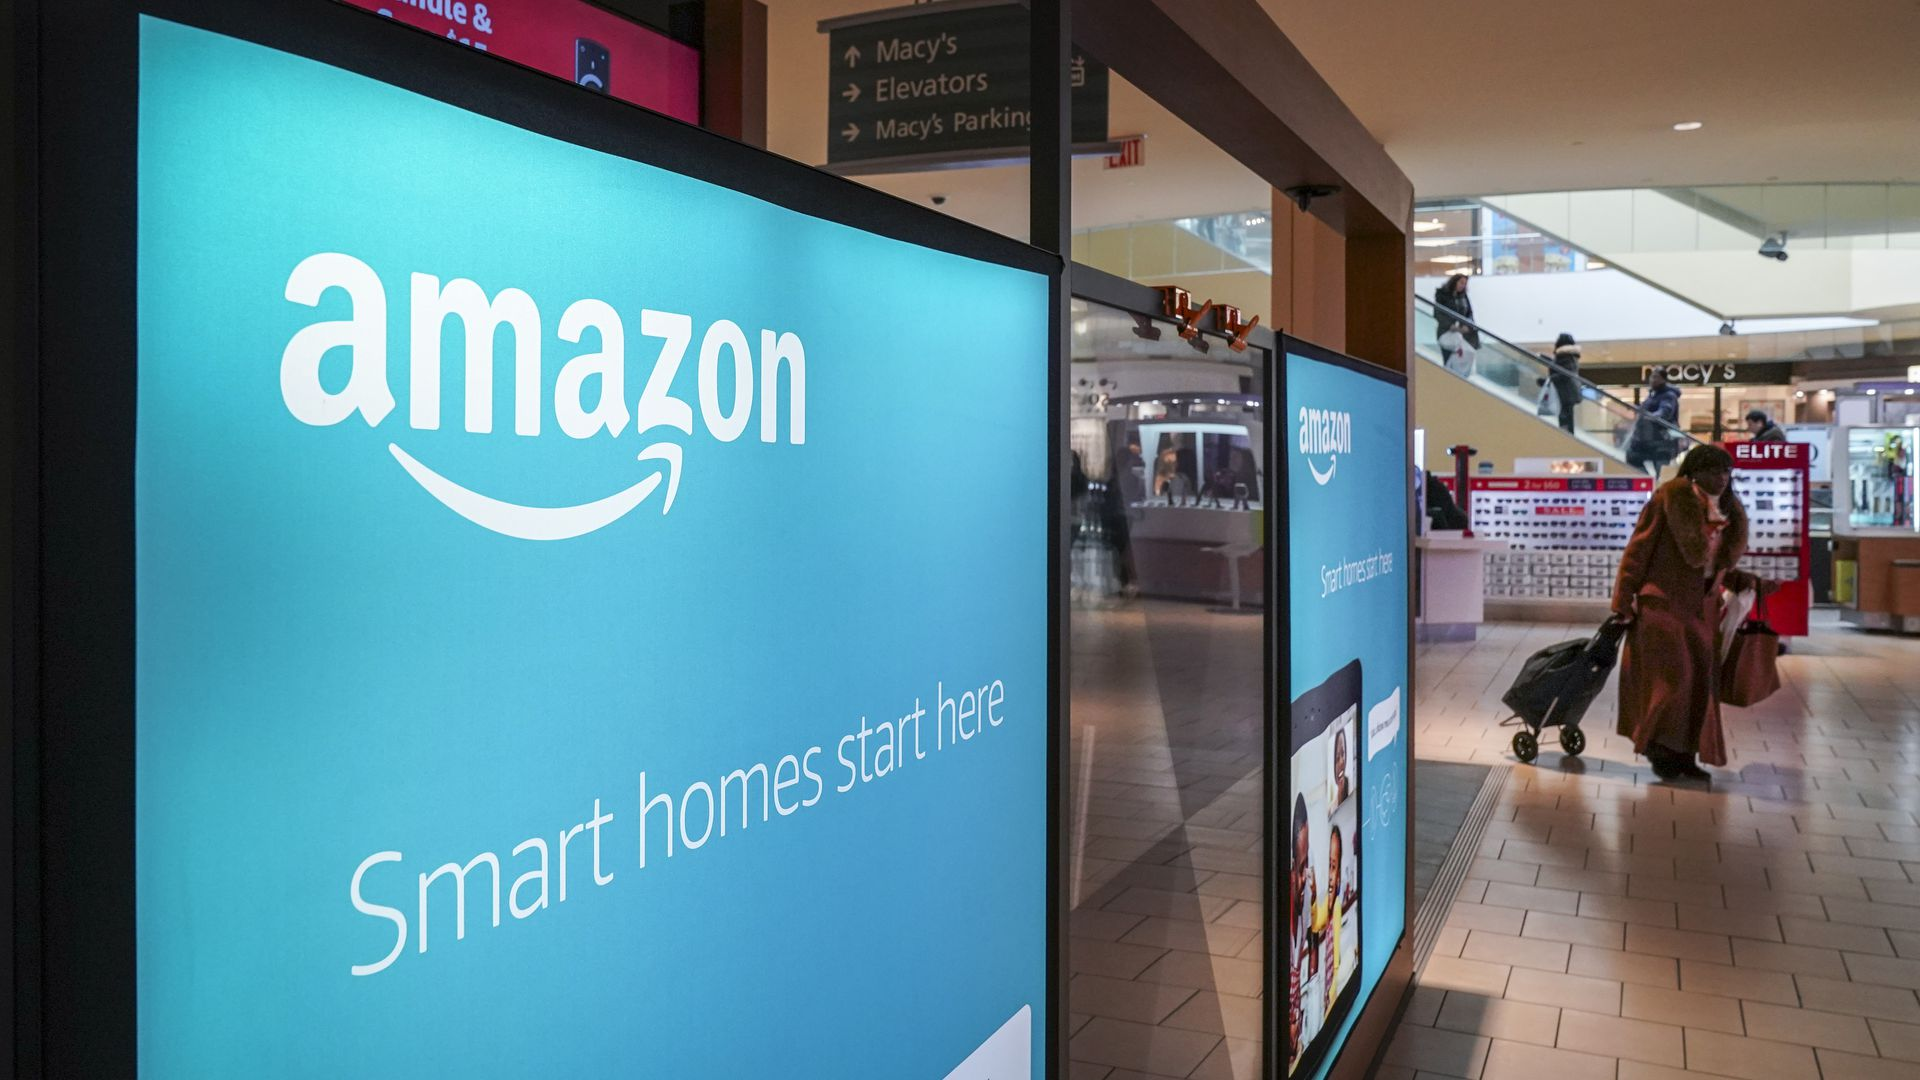 Amazon pop-up signs at the Queens Center Shopping Mall in New York